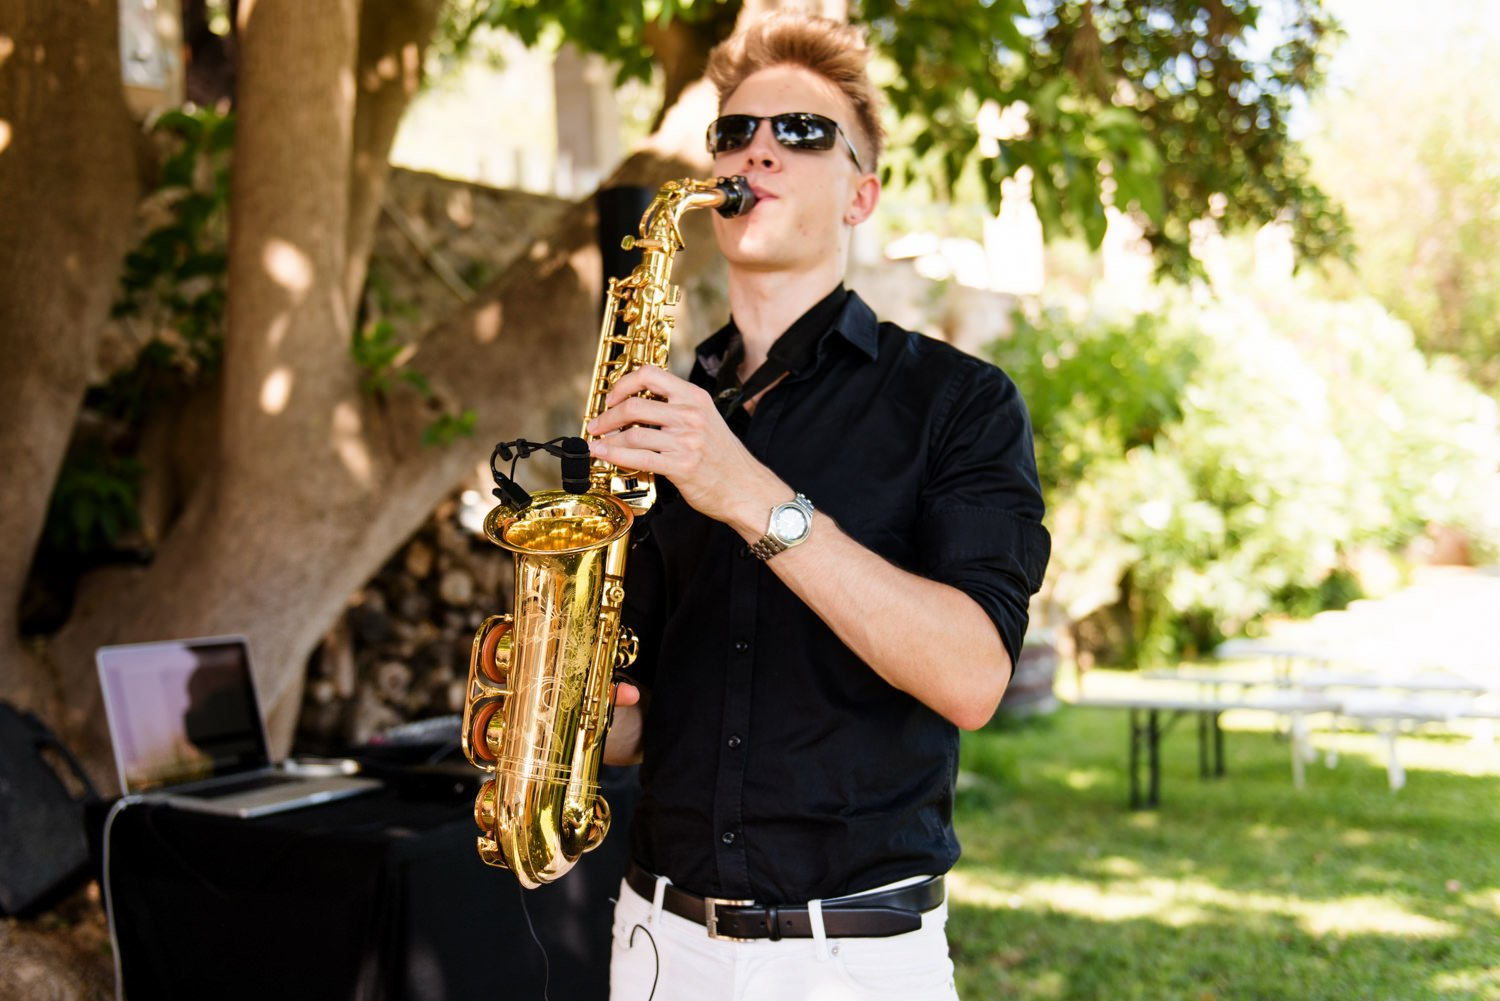 Dan Goode Saxophonist plays at Mallorca Destination Wedding